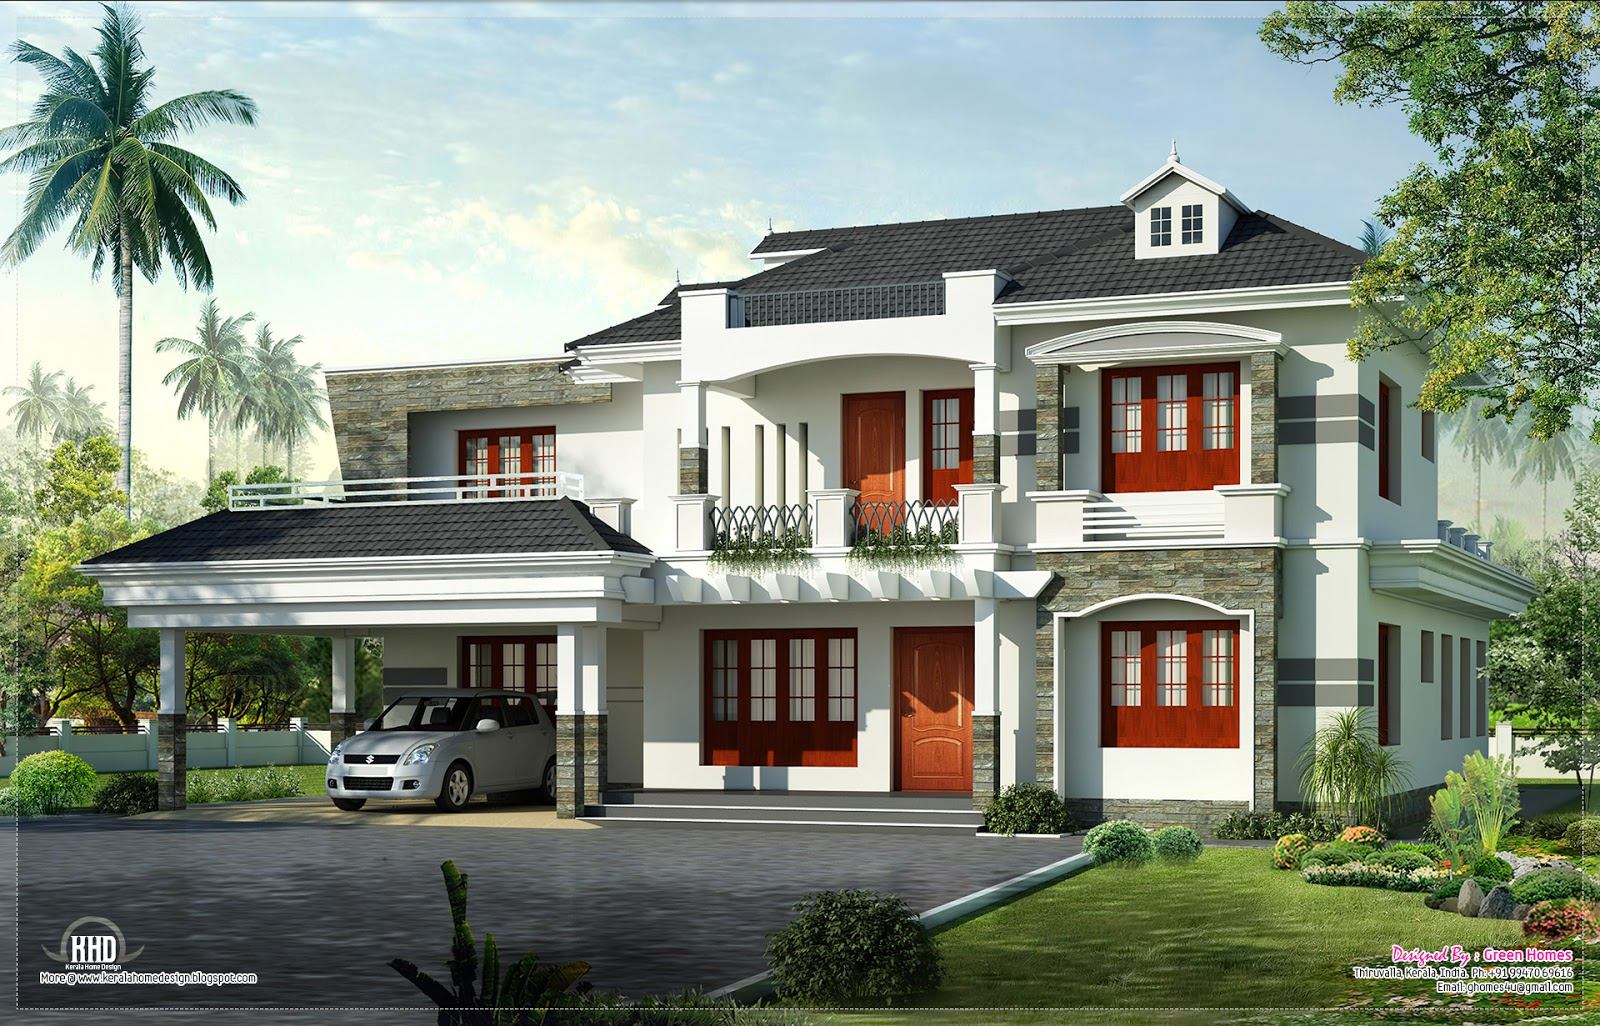 New Kerala Home Design Facilities In This House